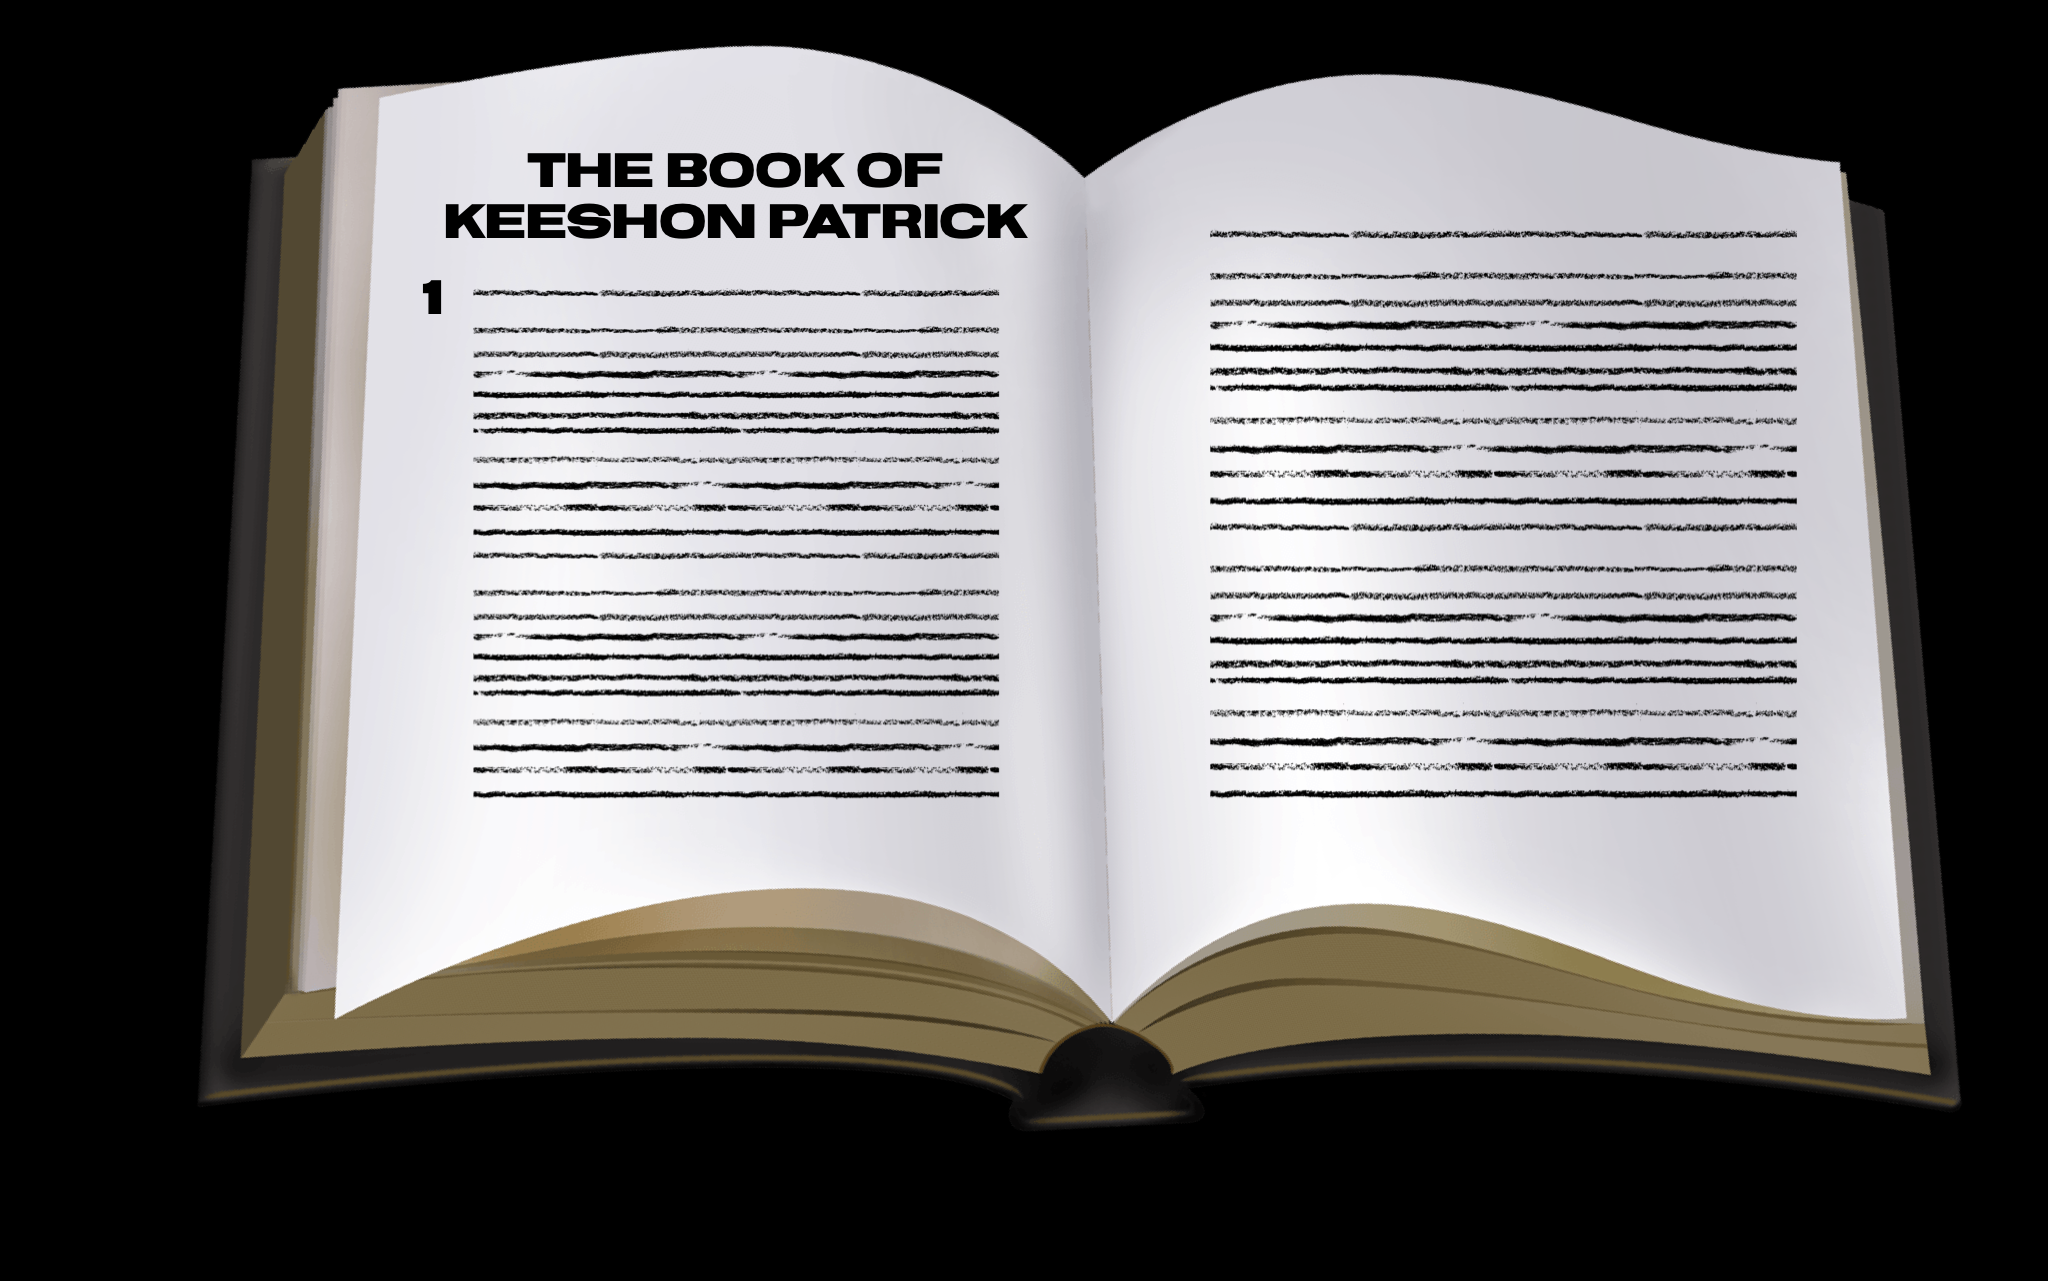 The Book of Keeshon Patrick